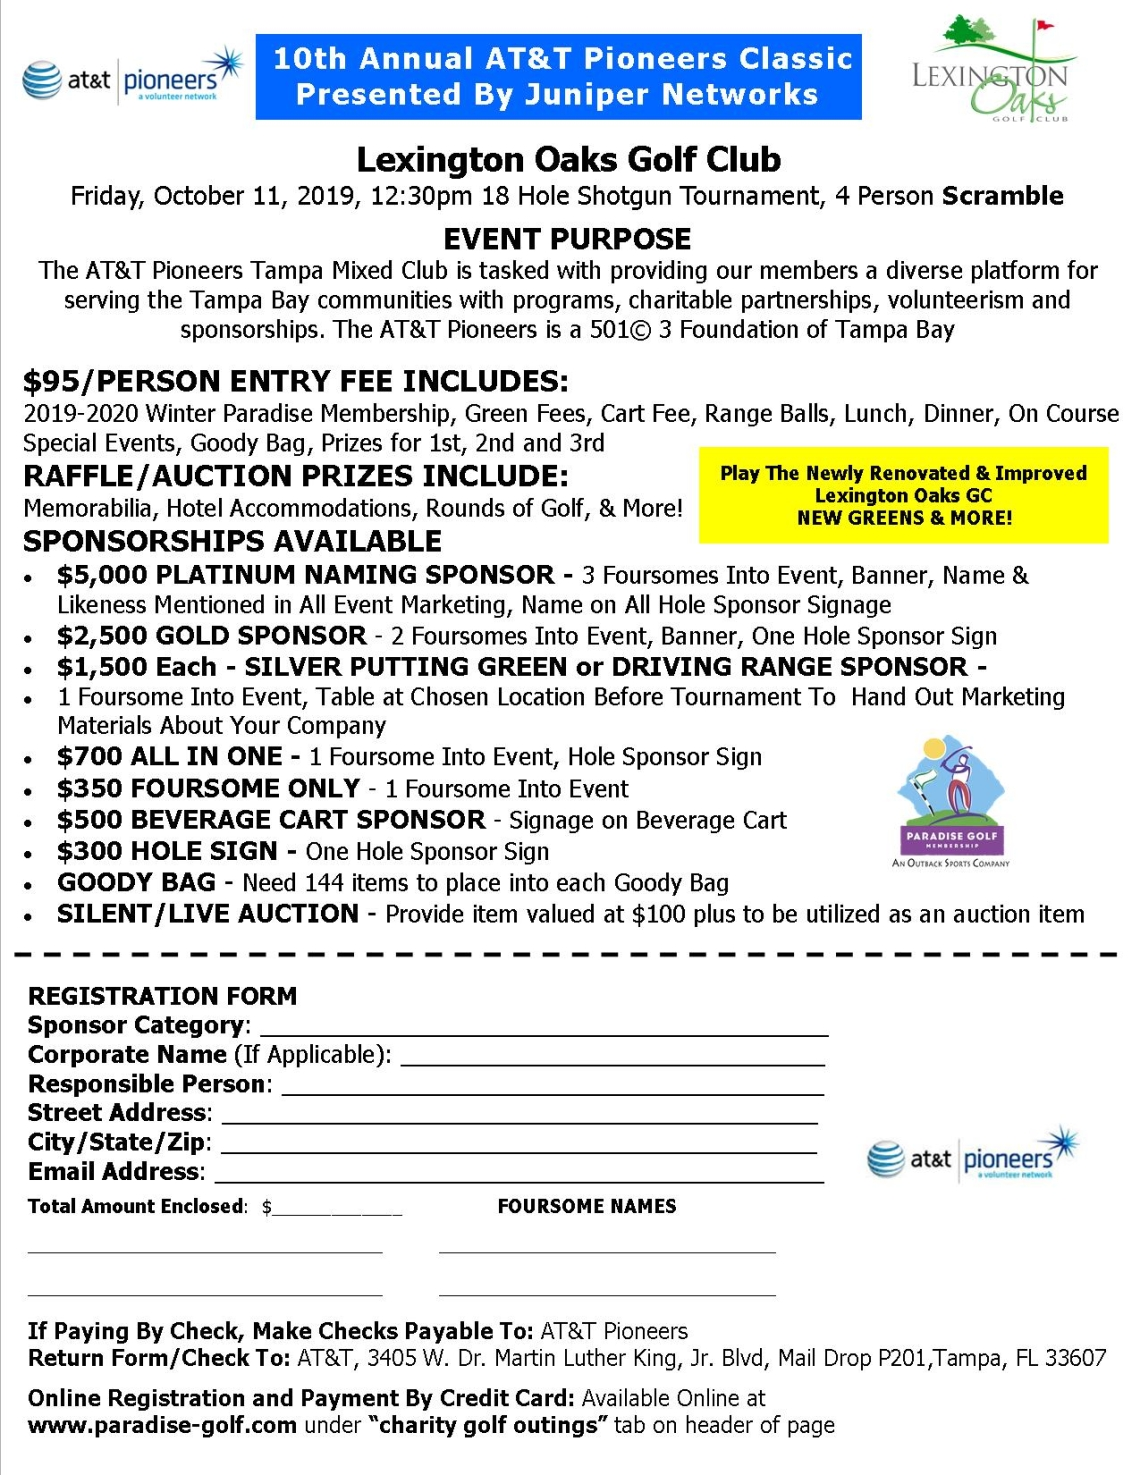 AT&T Pioneers Charity Golf Outing, Fri, Oct 11, 2019